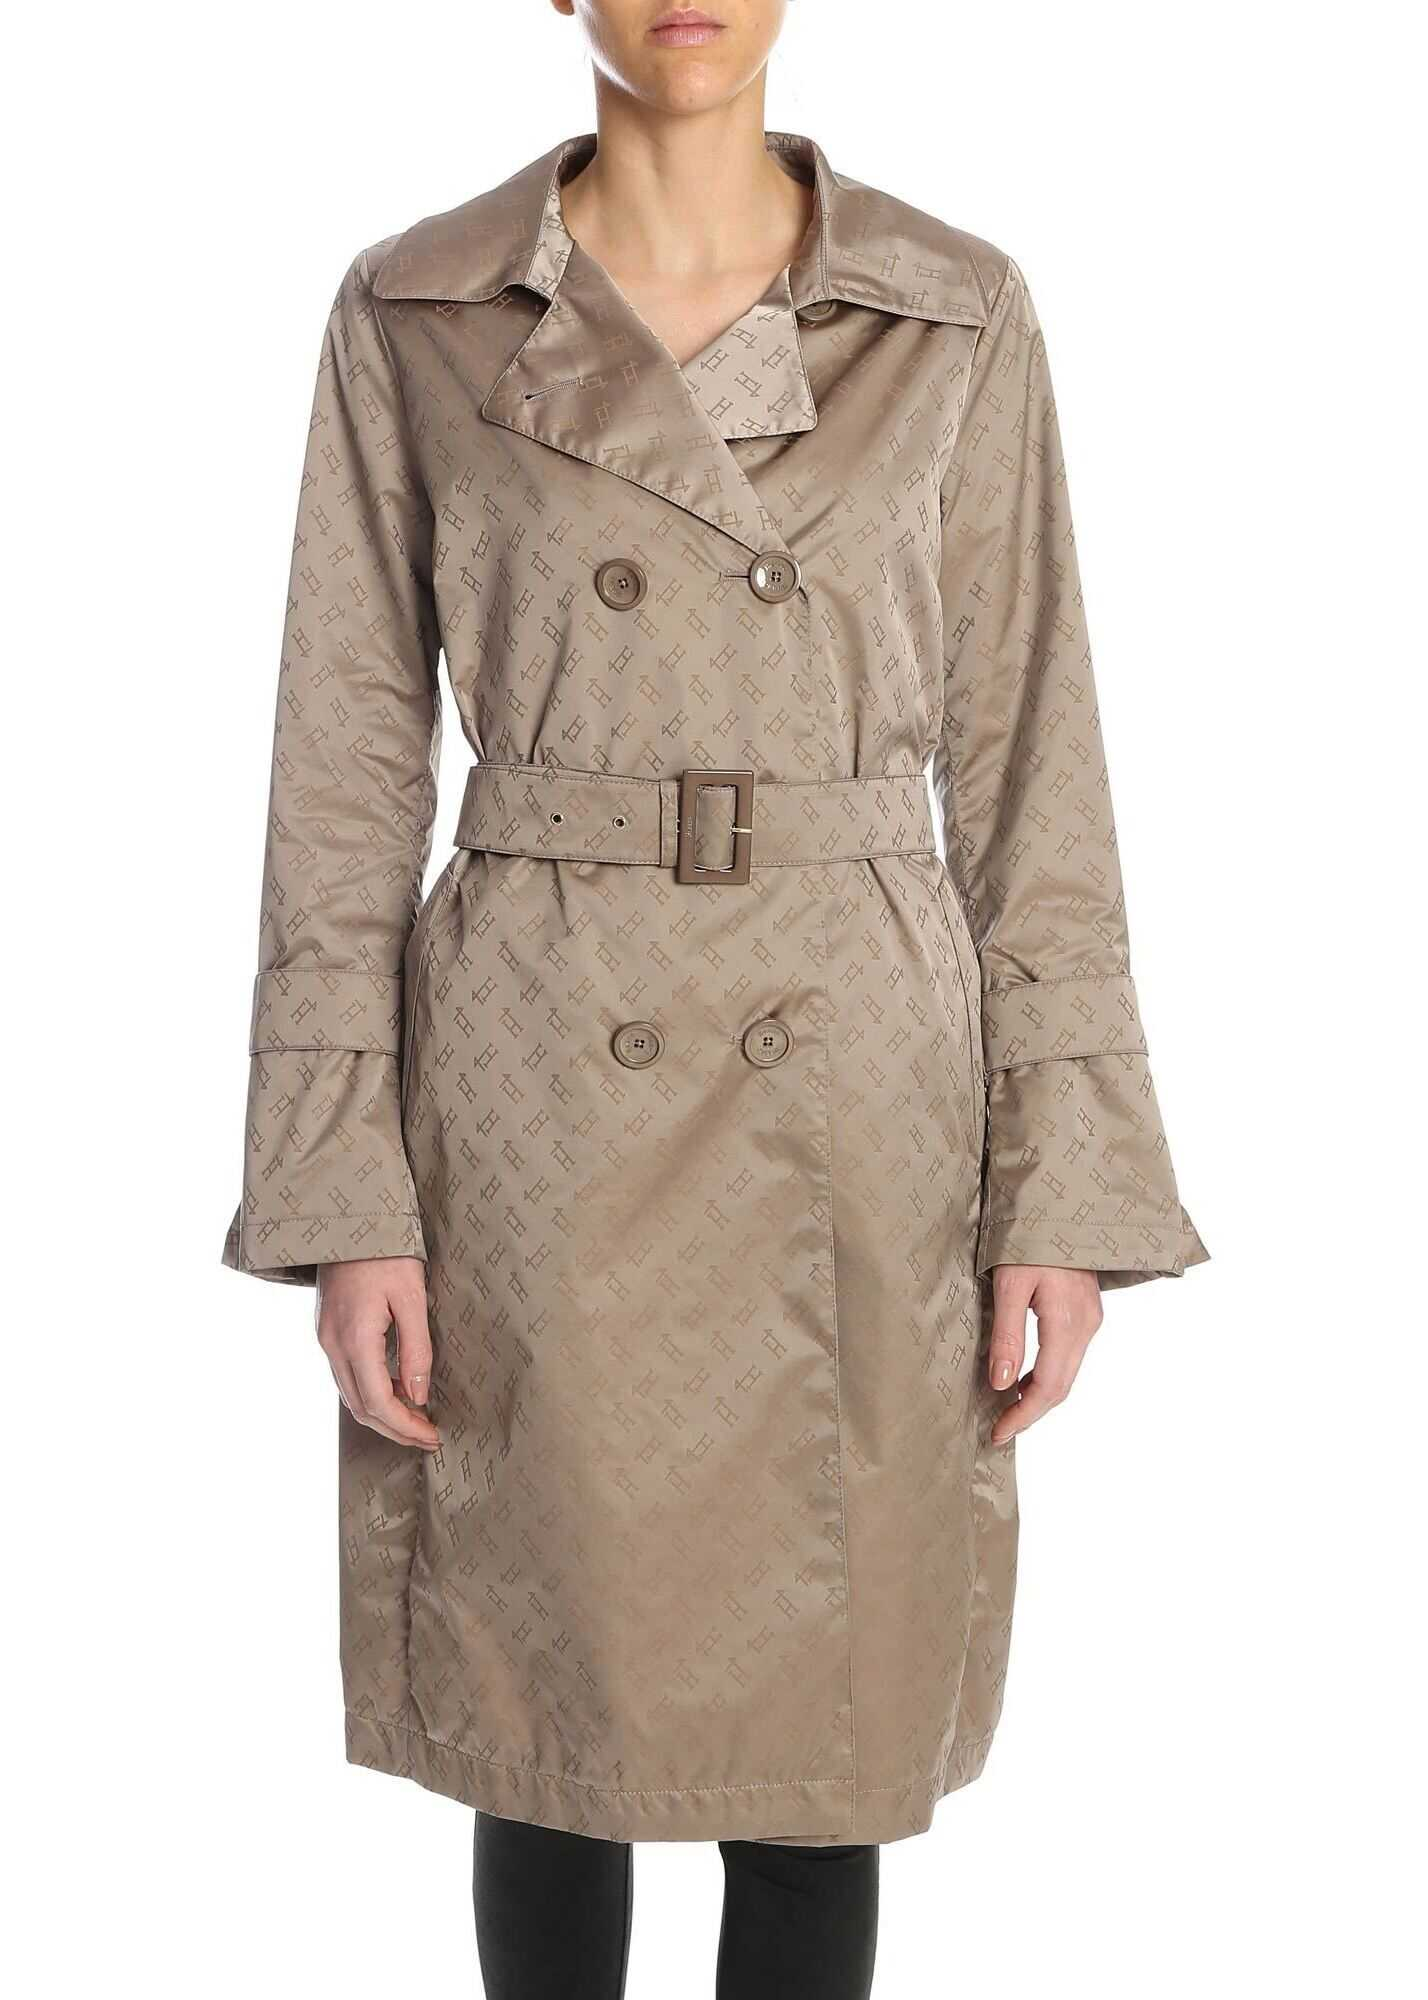 All Over Logo Trench Coat In Beige thumbnail